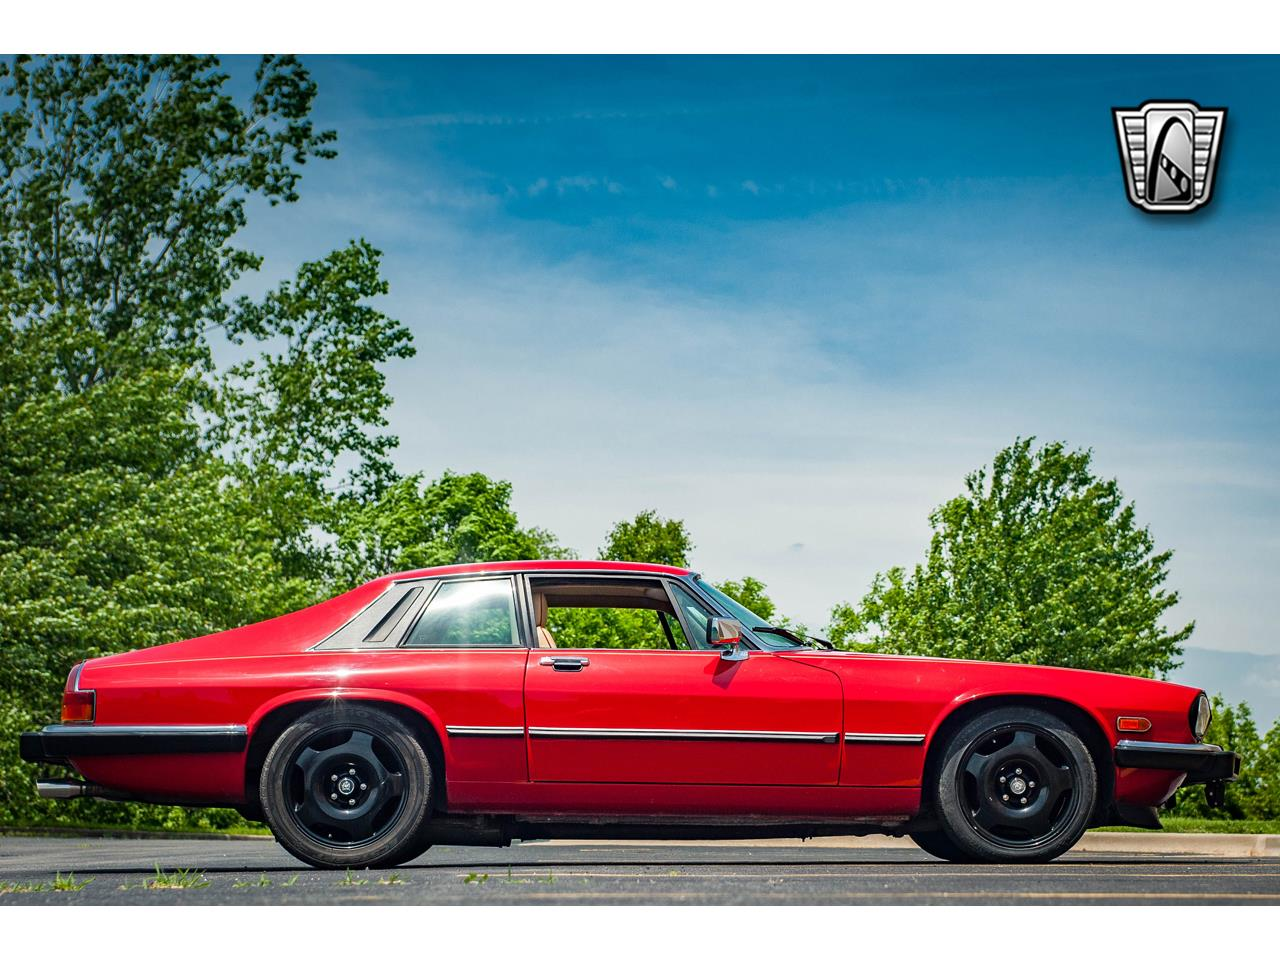 Large Picture of '89 Jaguar XJS located in O'Fallon Illinois Offered by Gateway Classic Cars - St. Louis - QB9L